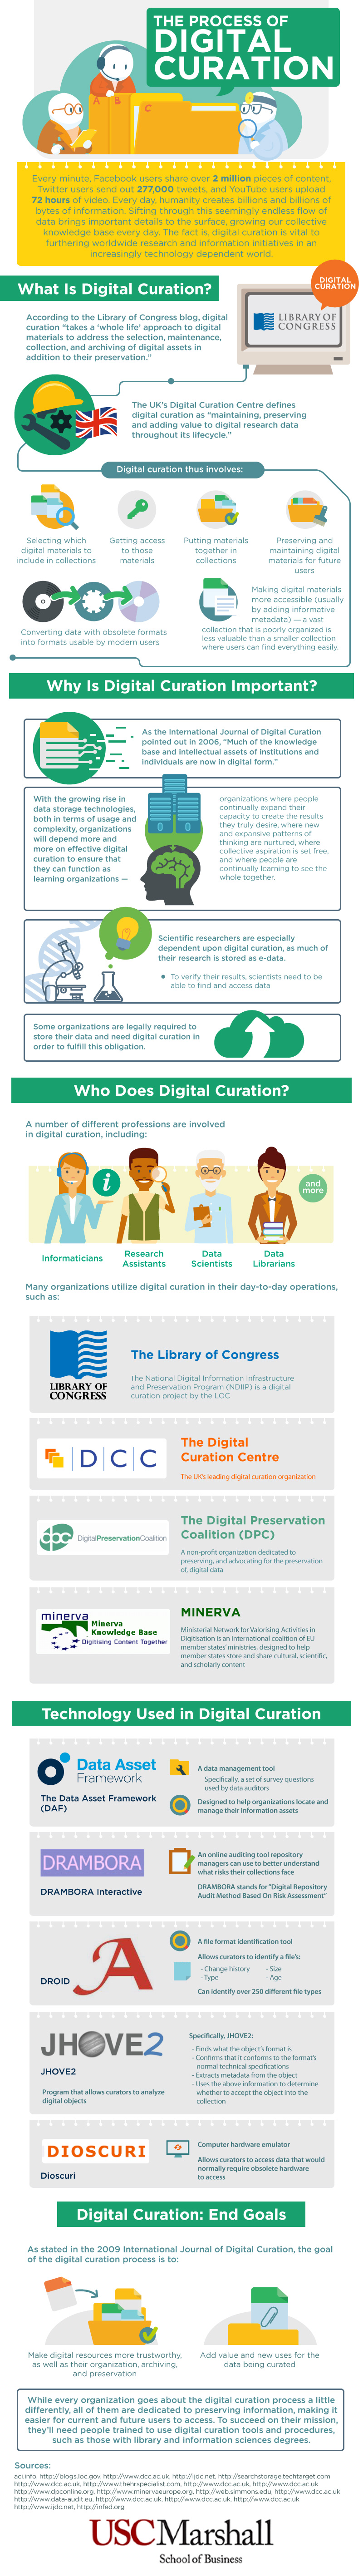 digital curation infographic